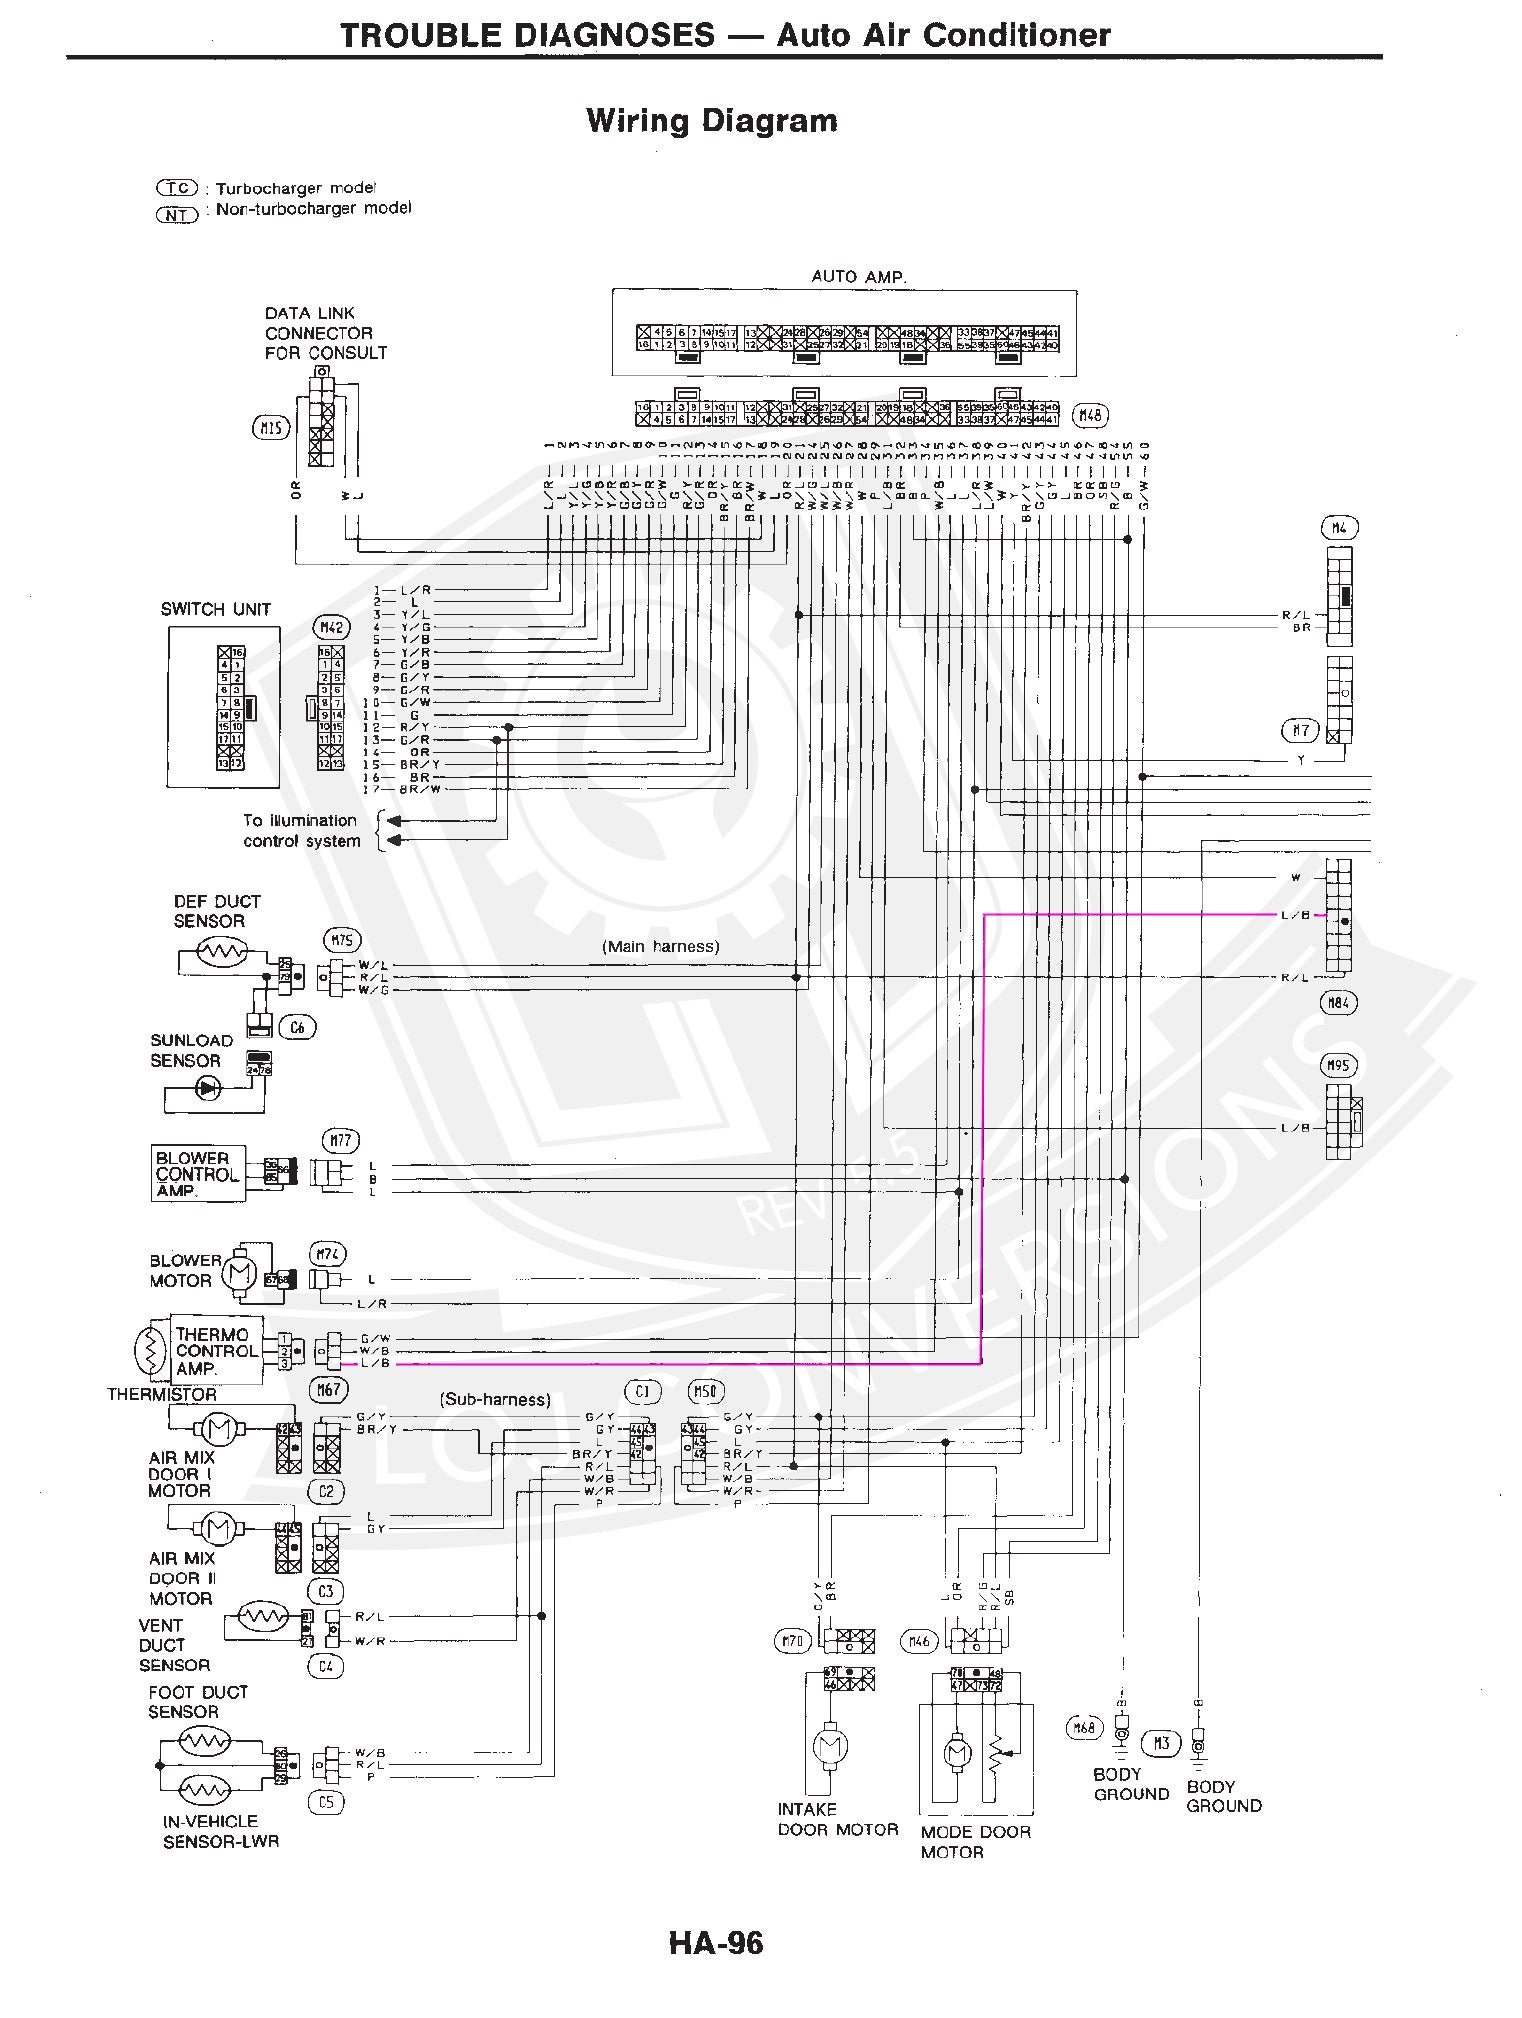 1999 Kenworth W900 Wiring Diagram